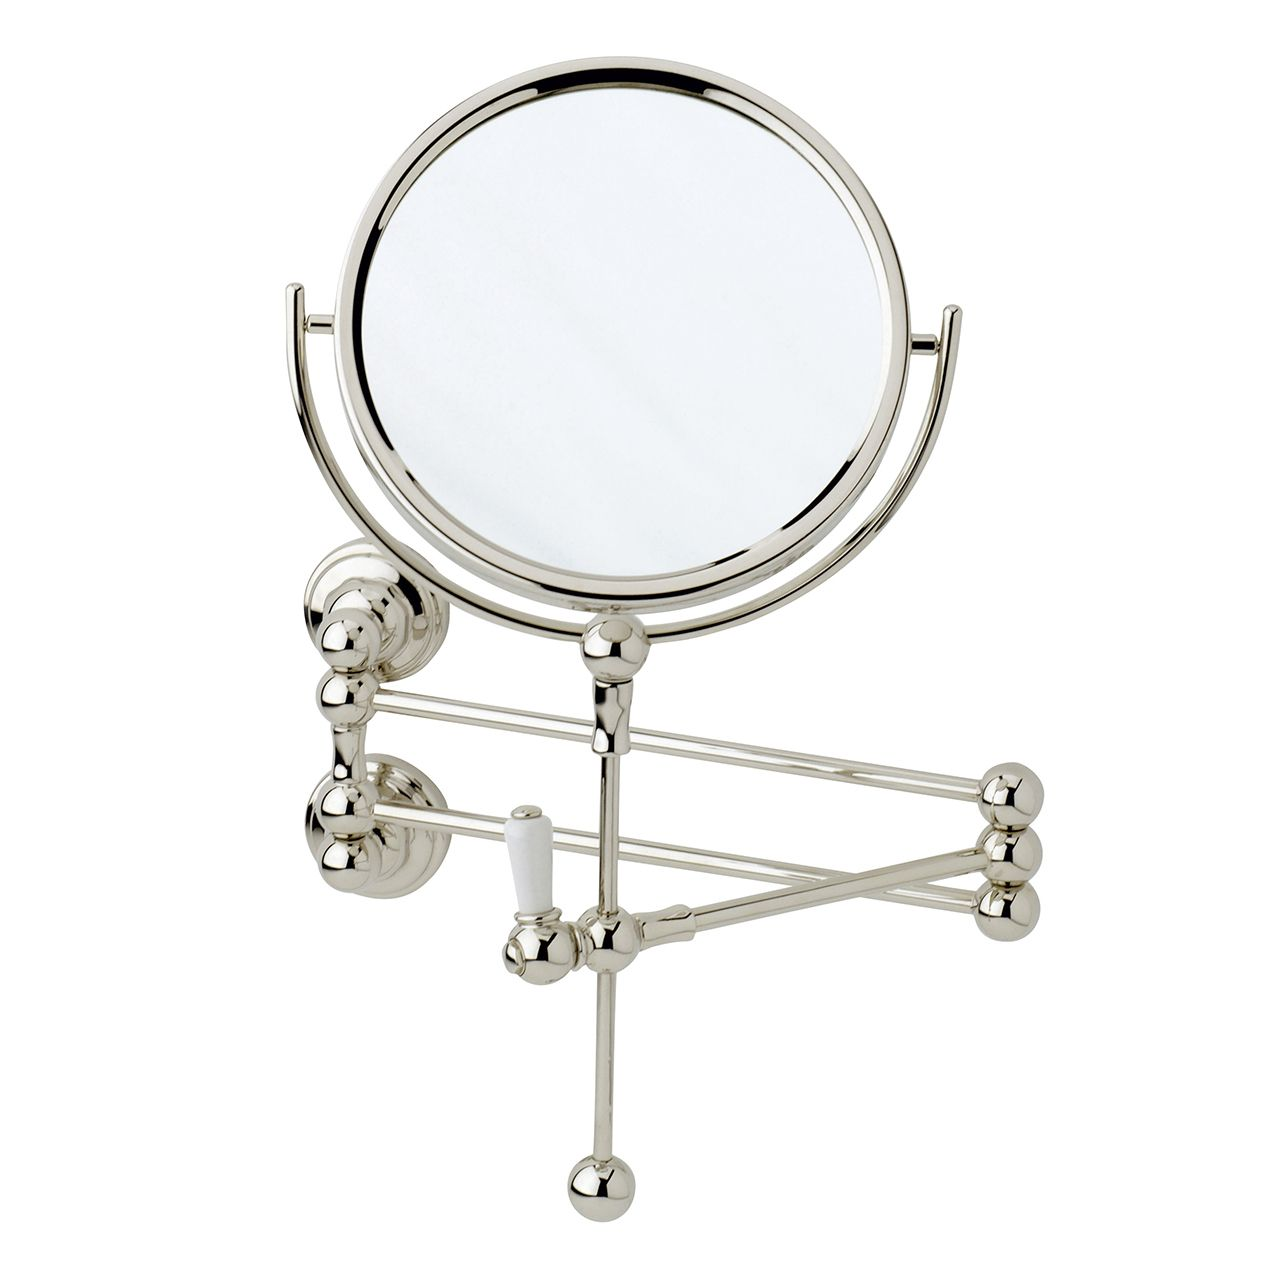 6918 Perrin Amp Rowe Wall Mounted Shaving Mirror Just Perrin